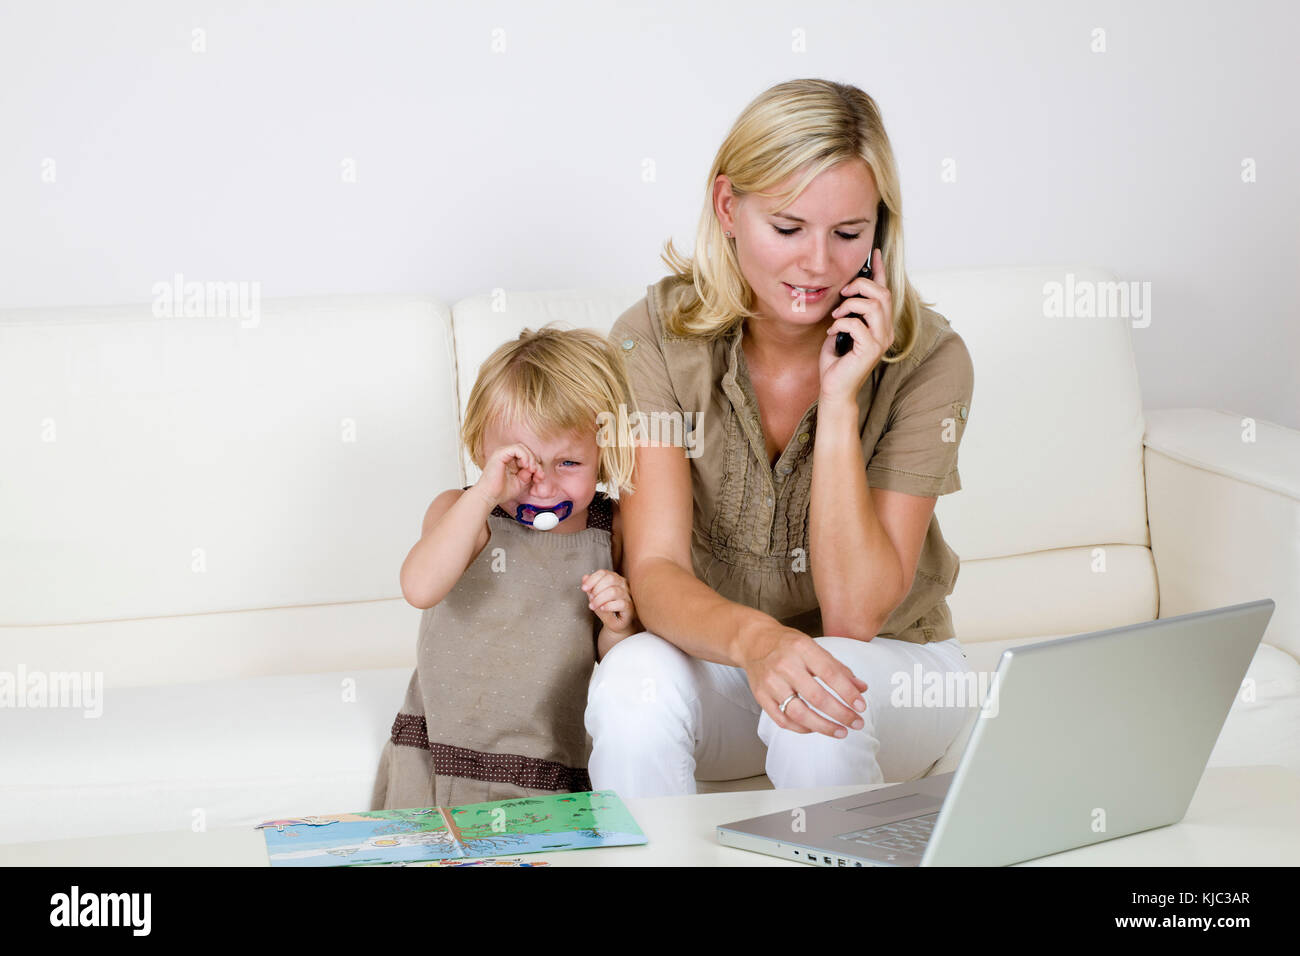 Mother Using Laptop and Cell Phone, Toddler Standing Beside Her Crying - Stock Image